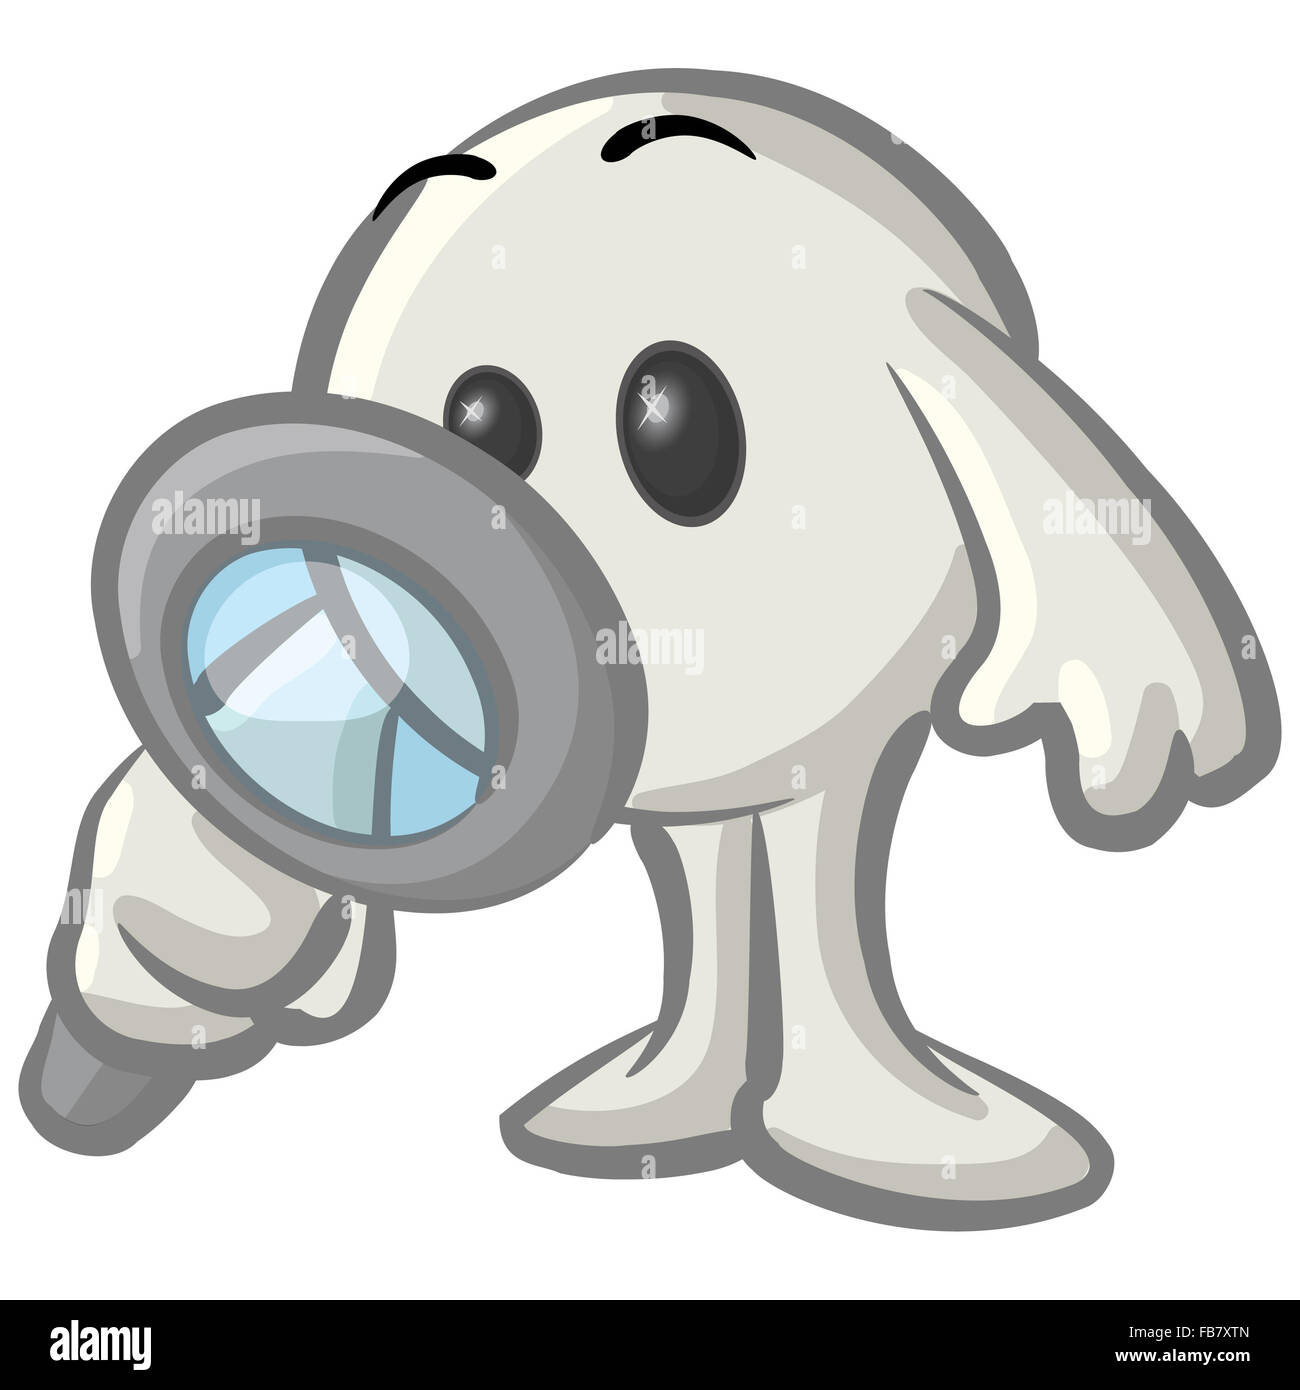 hight resolution of royalty free clipart picture of a white konkee character inspecting with a magnifying glass on a white background